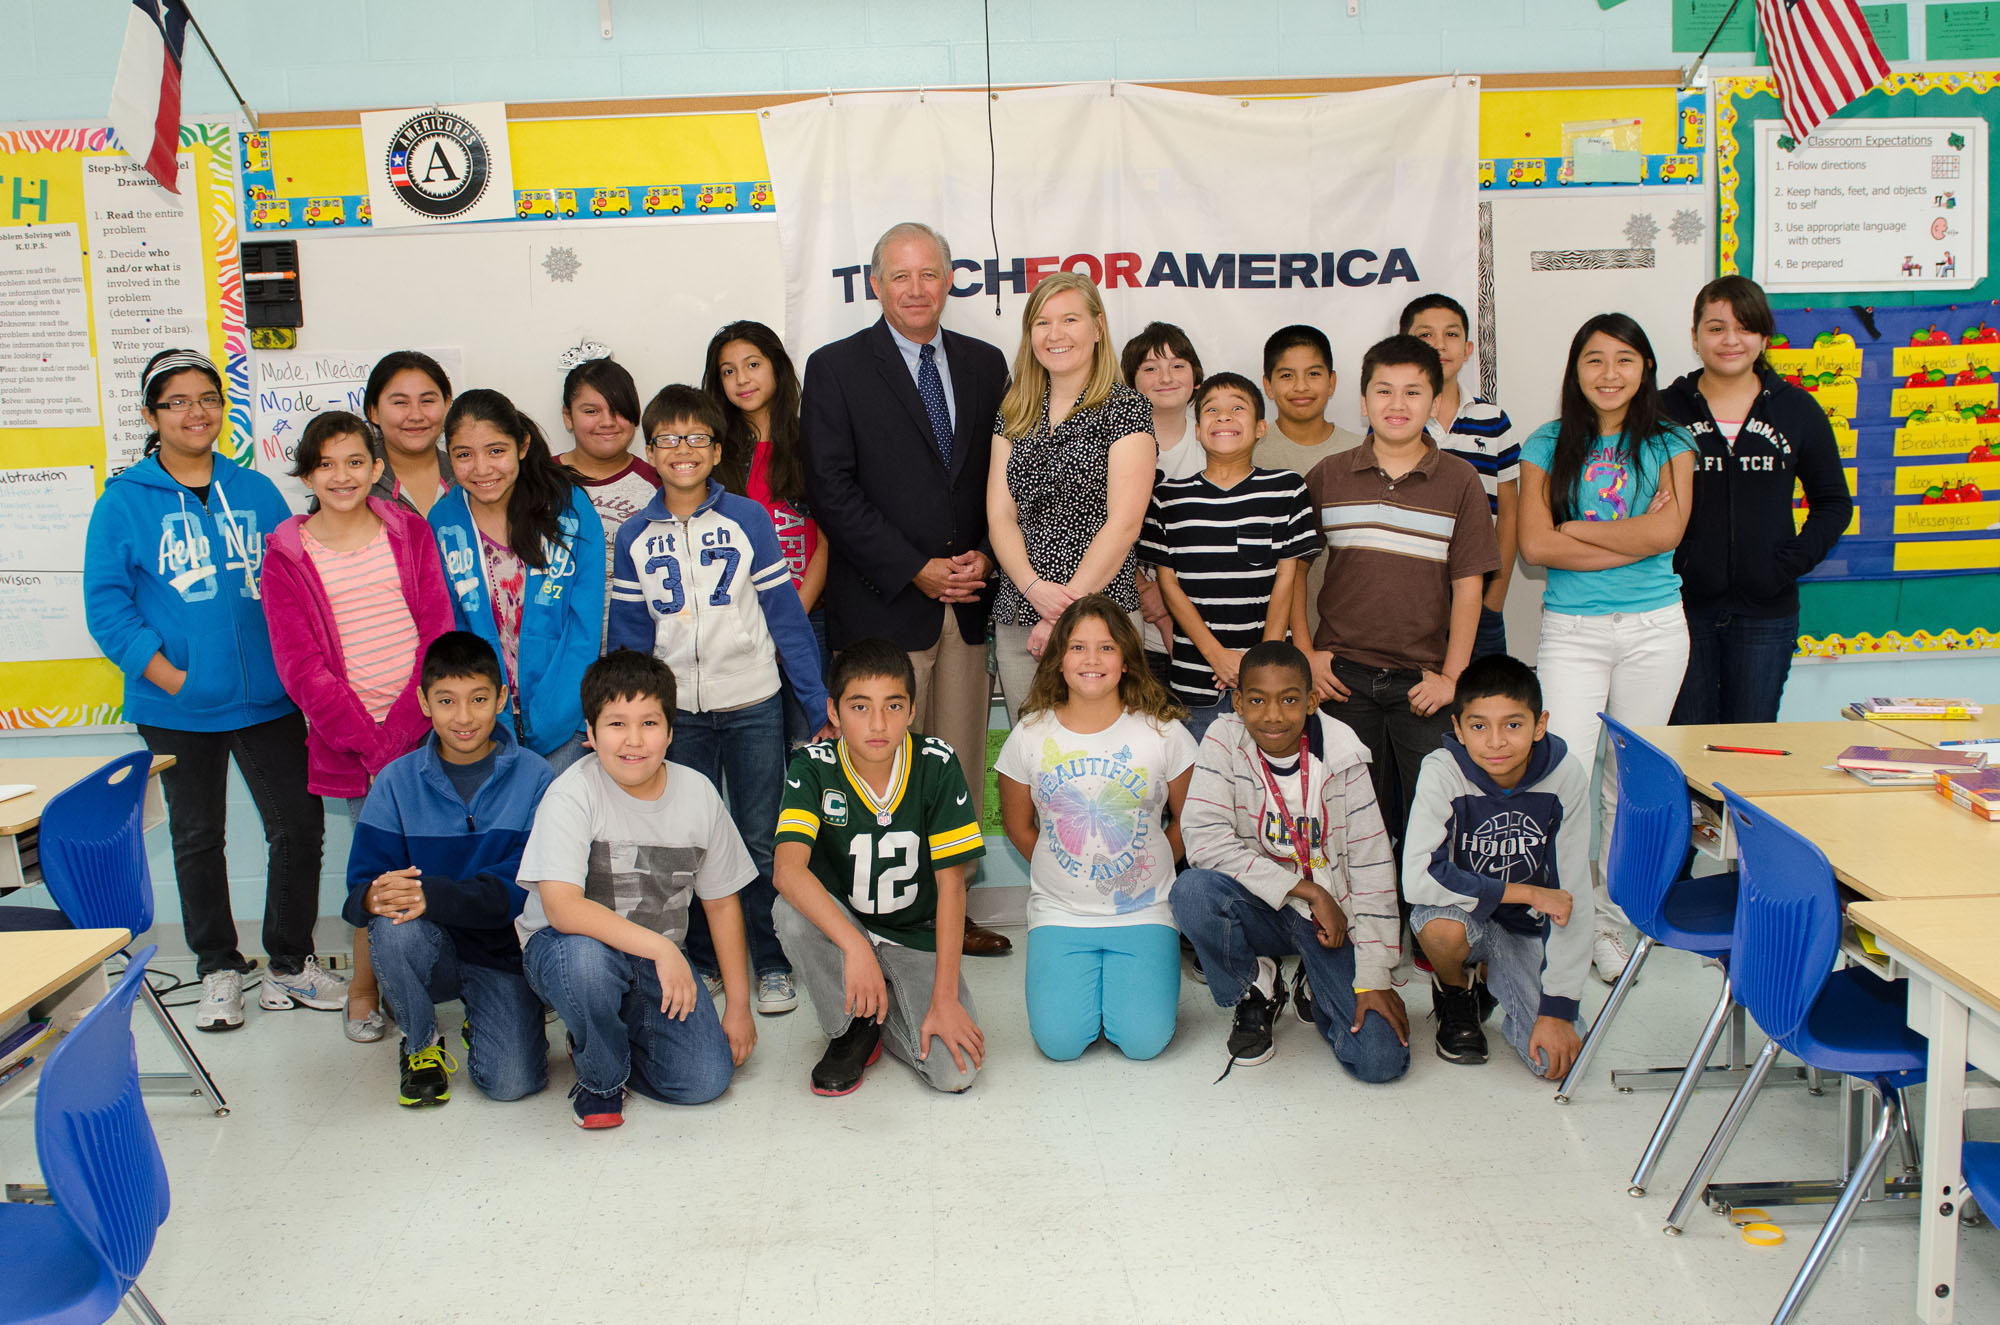 Valley Baptist Medical Center President visits Lee Means during Teach for America Week